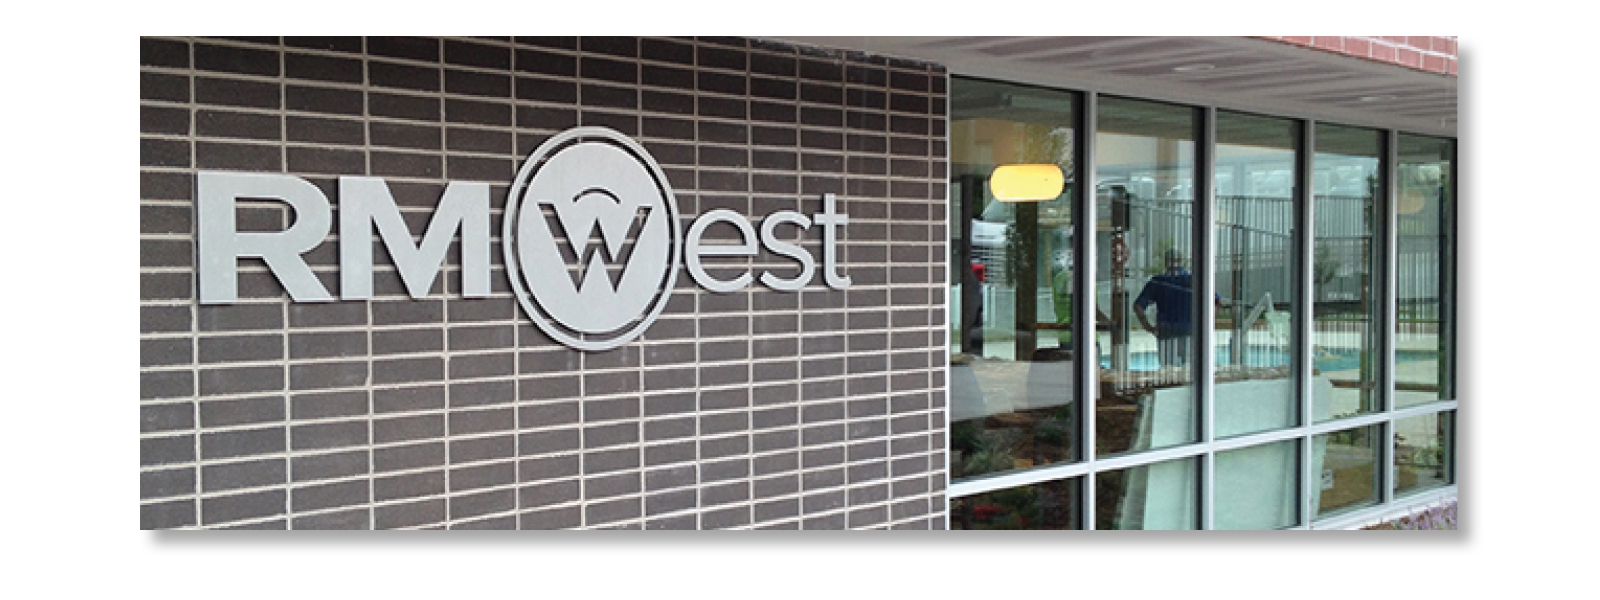 Sturges Word Client RMWest Signage - Logo Design -SERVICES INCLUDED: BRANDING • DESIGN • DIGITAL